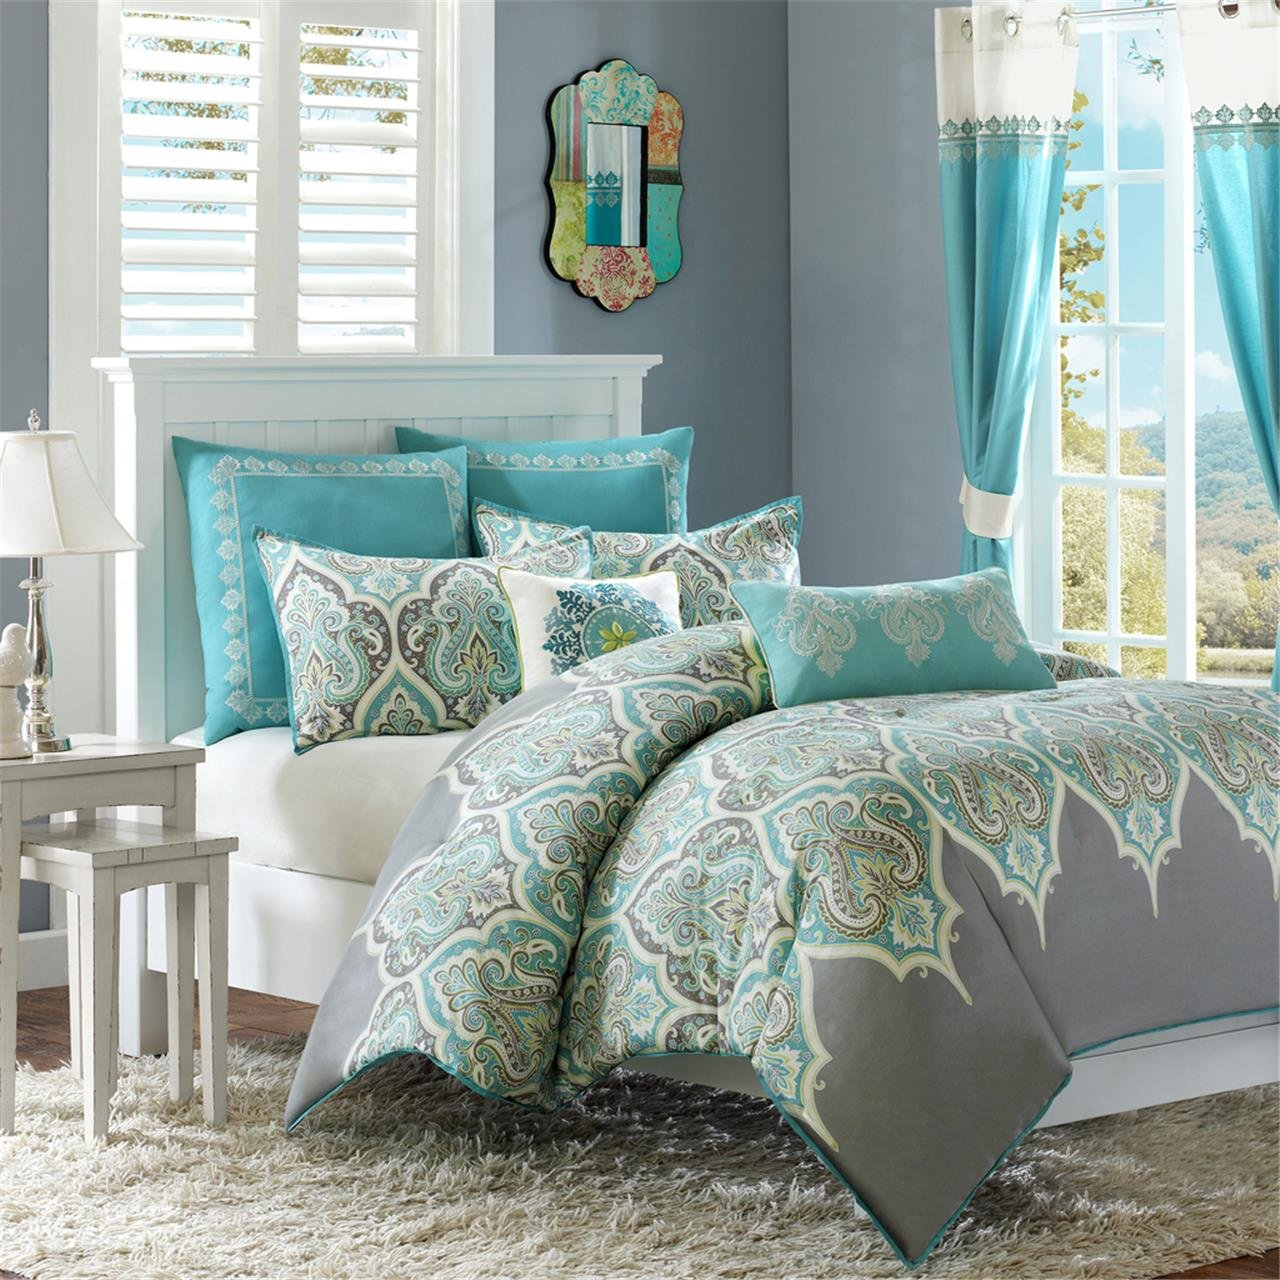 Madison Park Nisha Comforter Set, Teal, Full/Queen